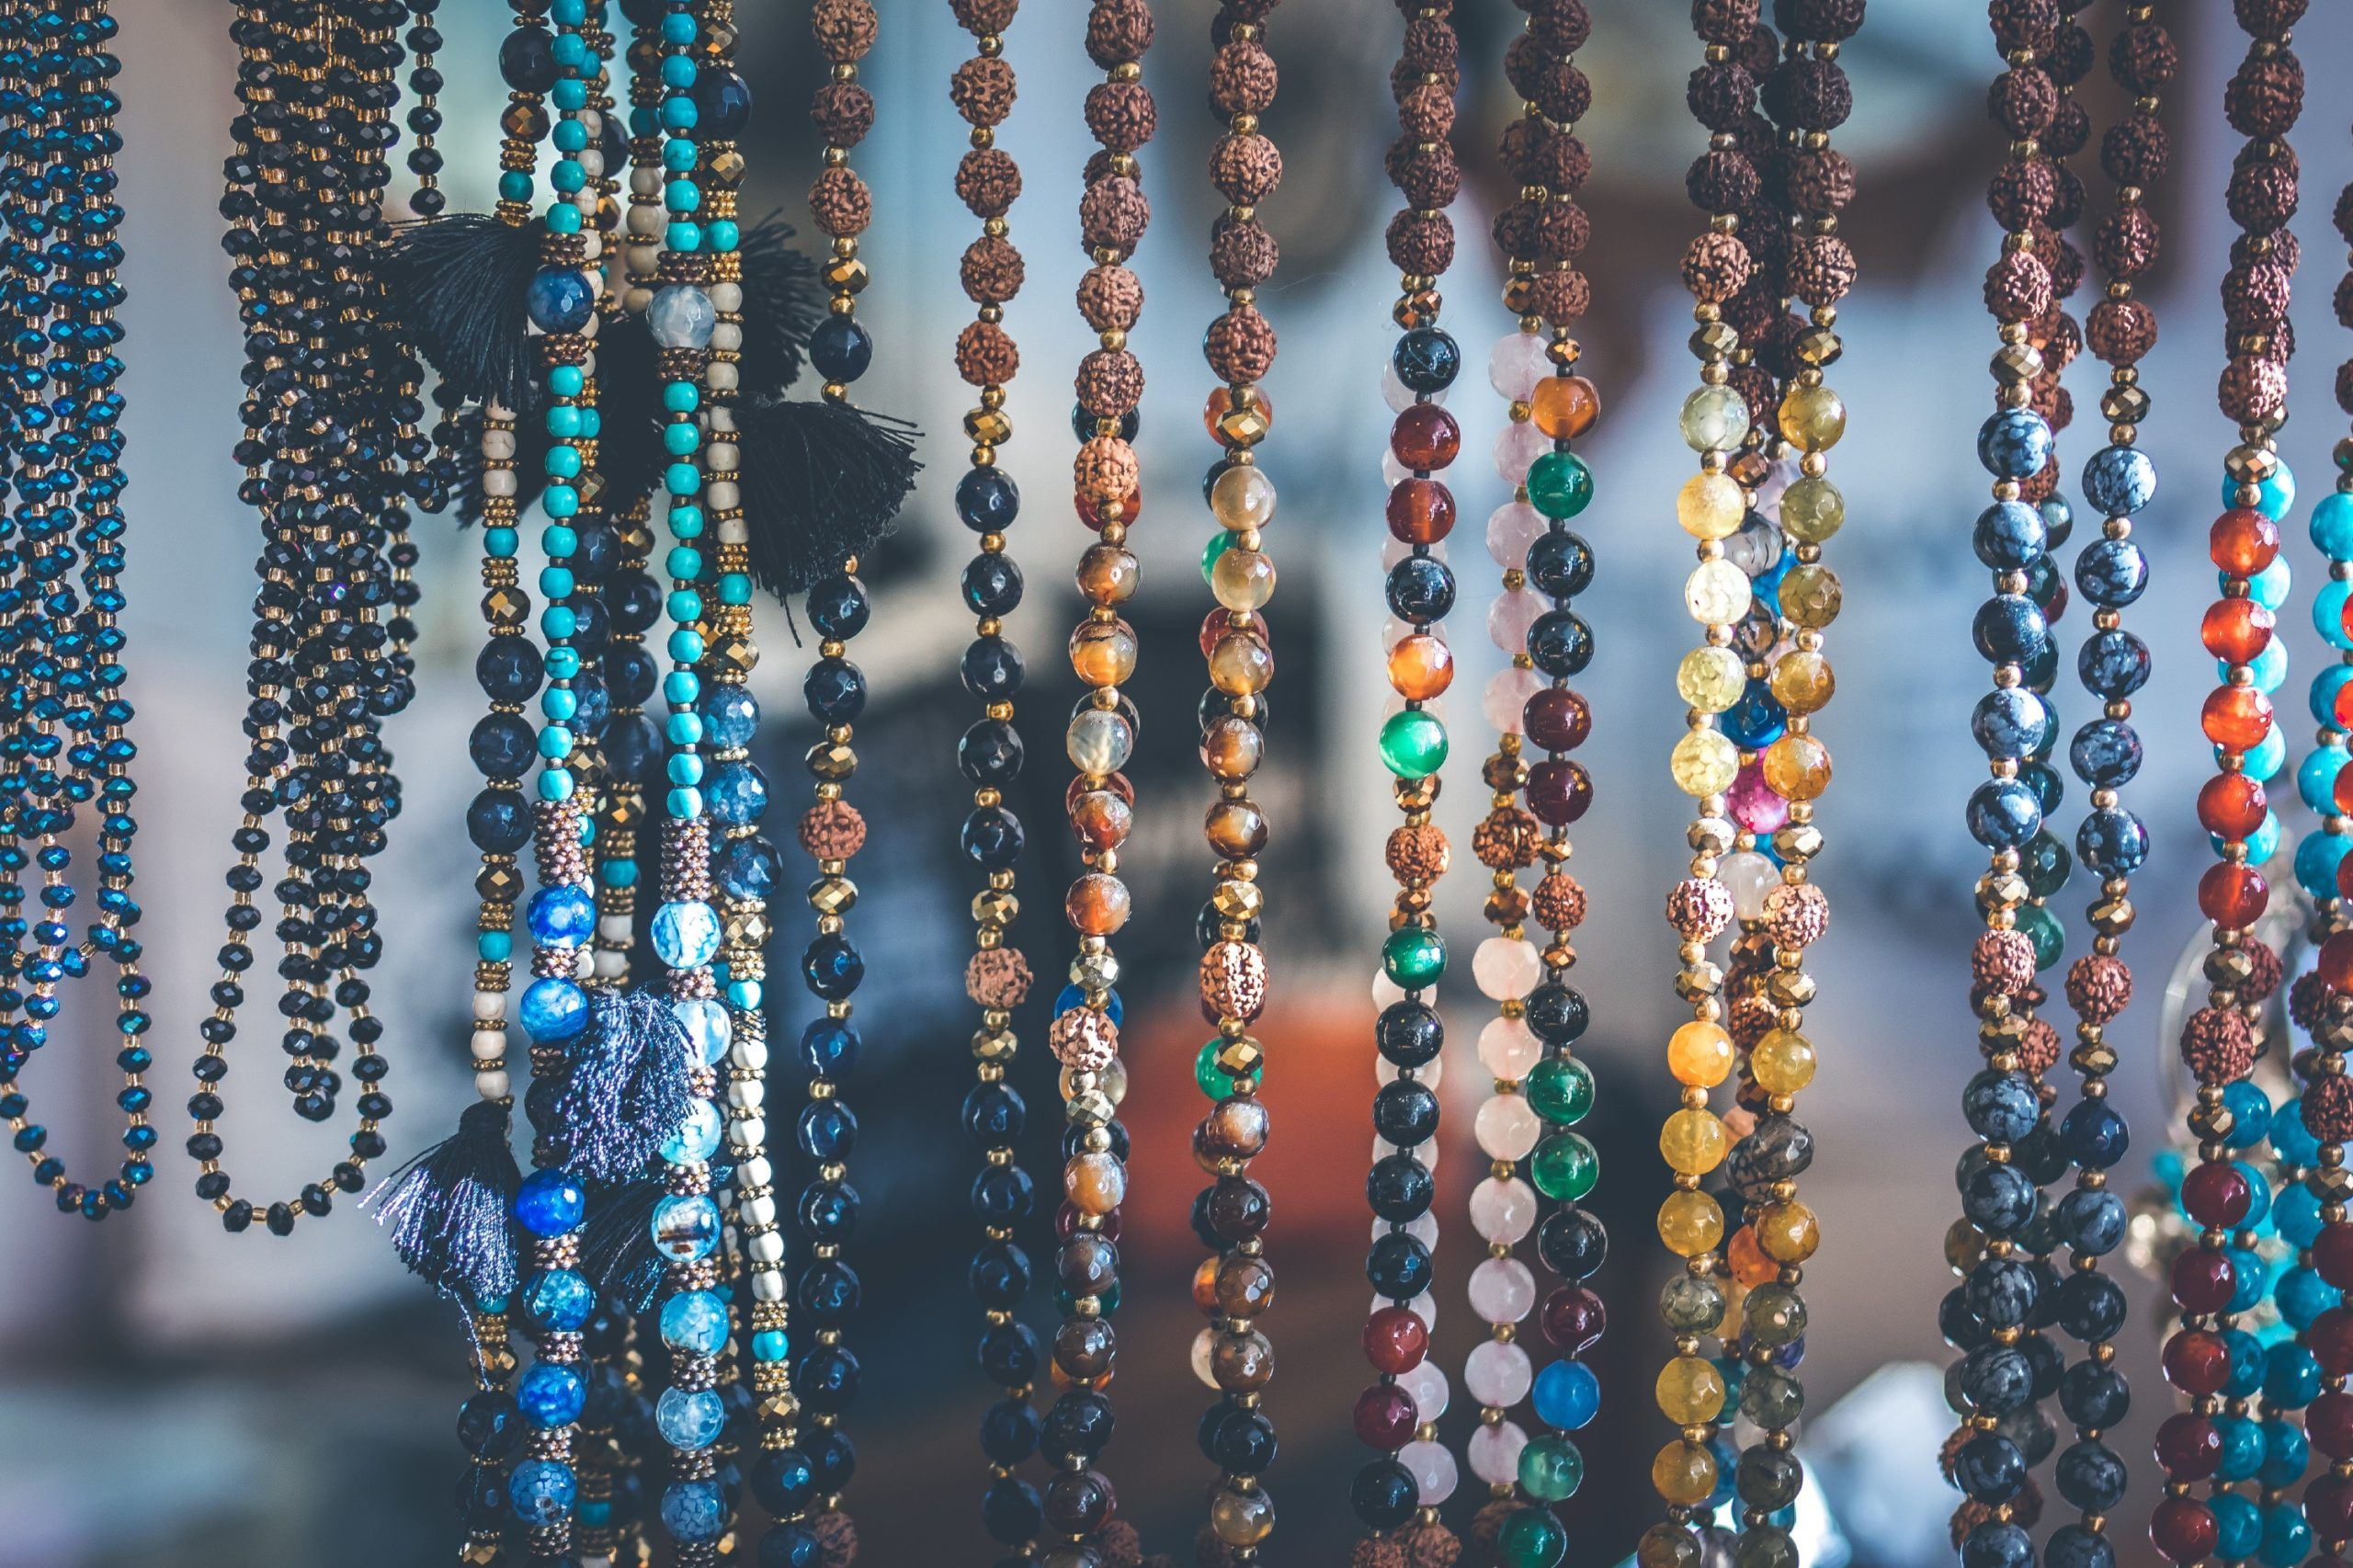 necklaces made from colorful beads